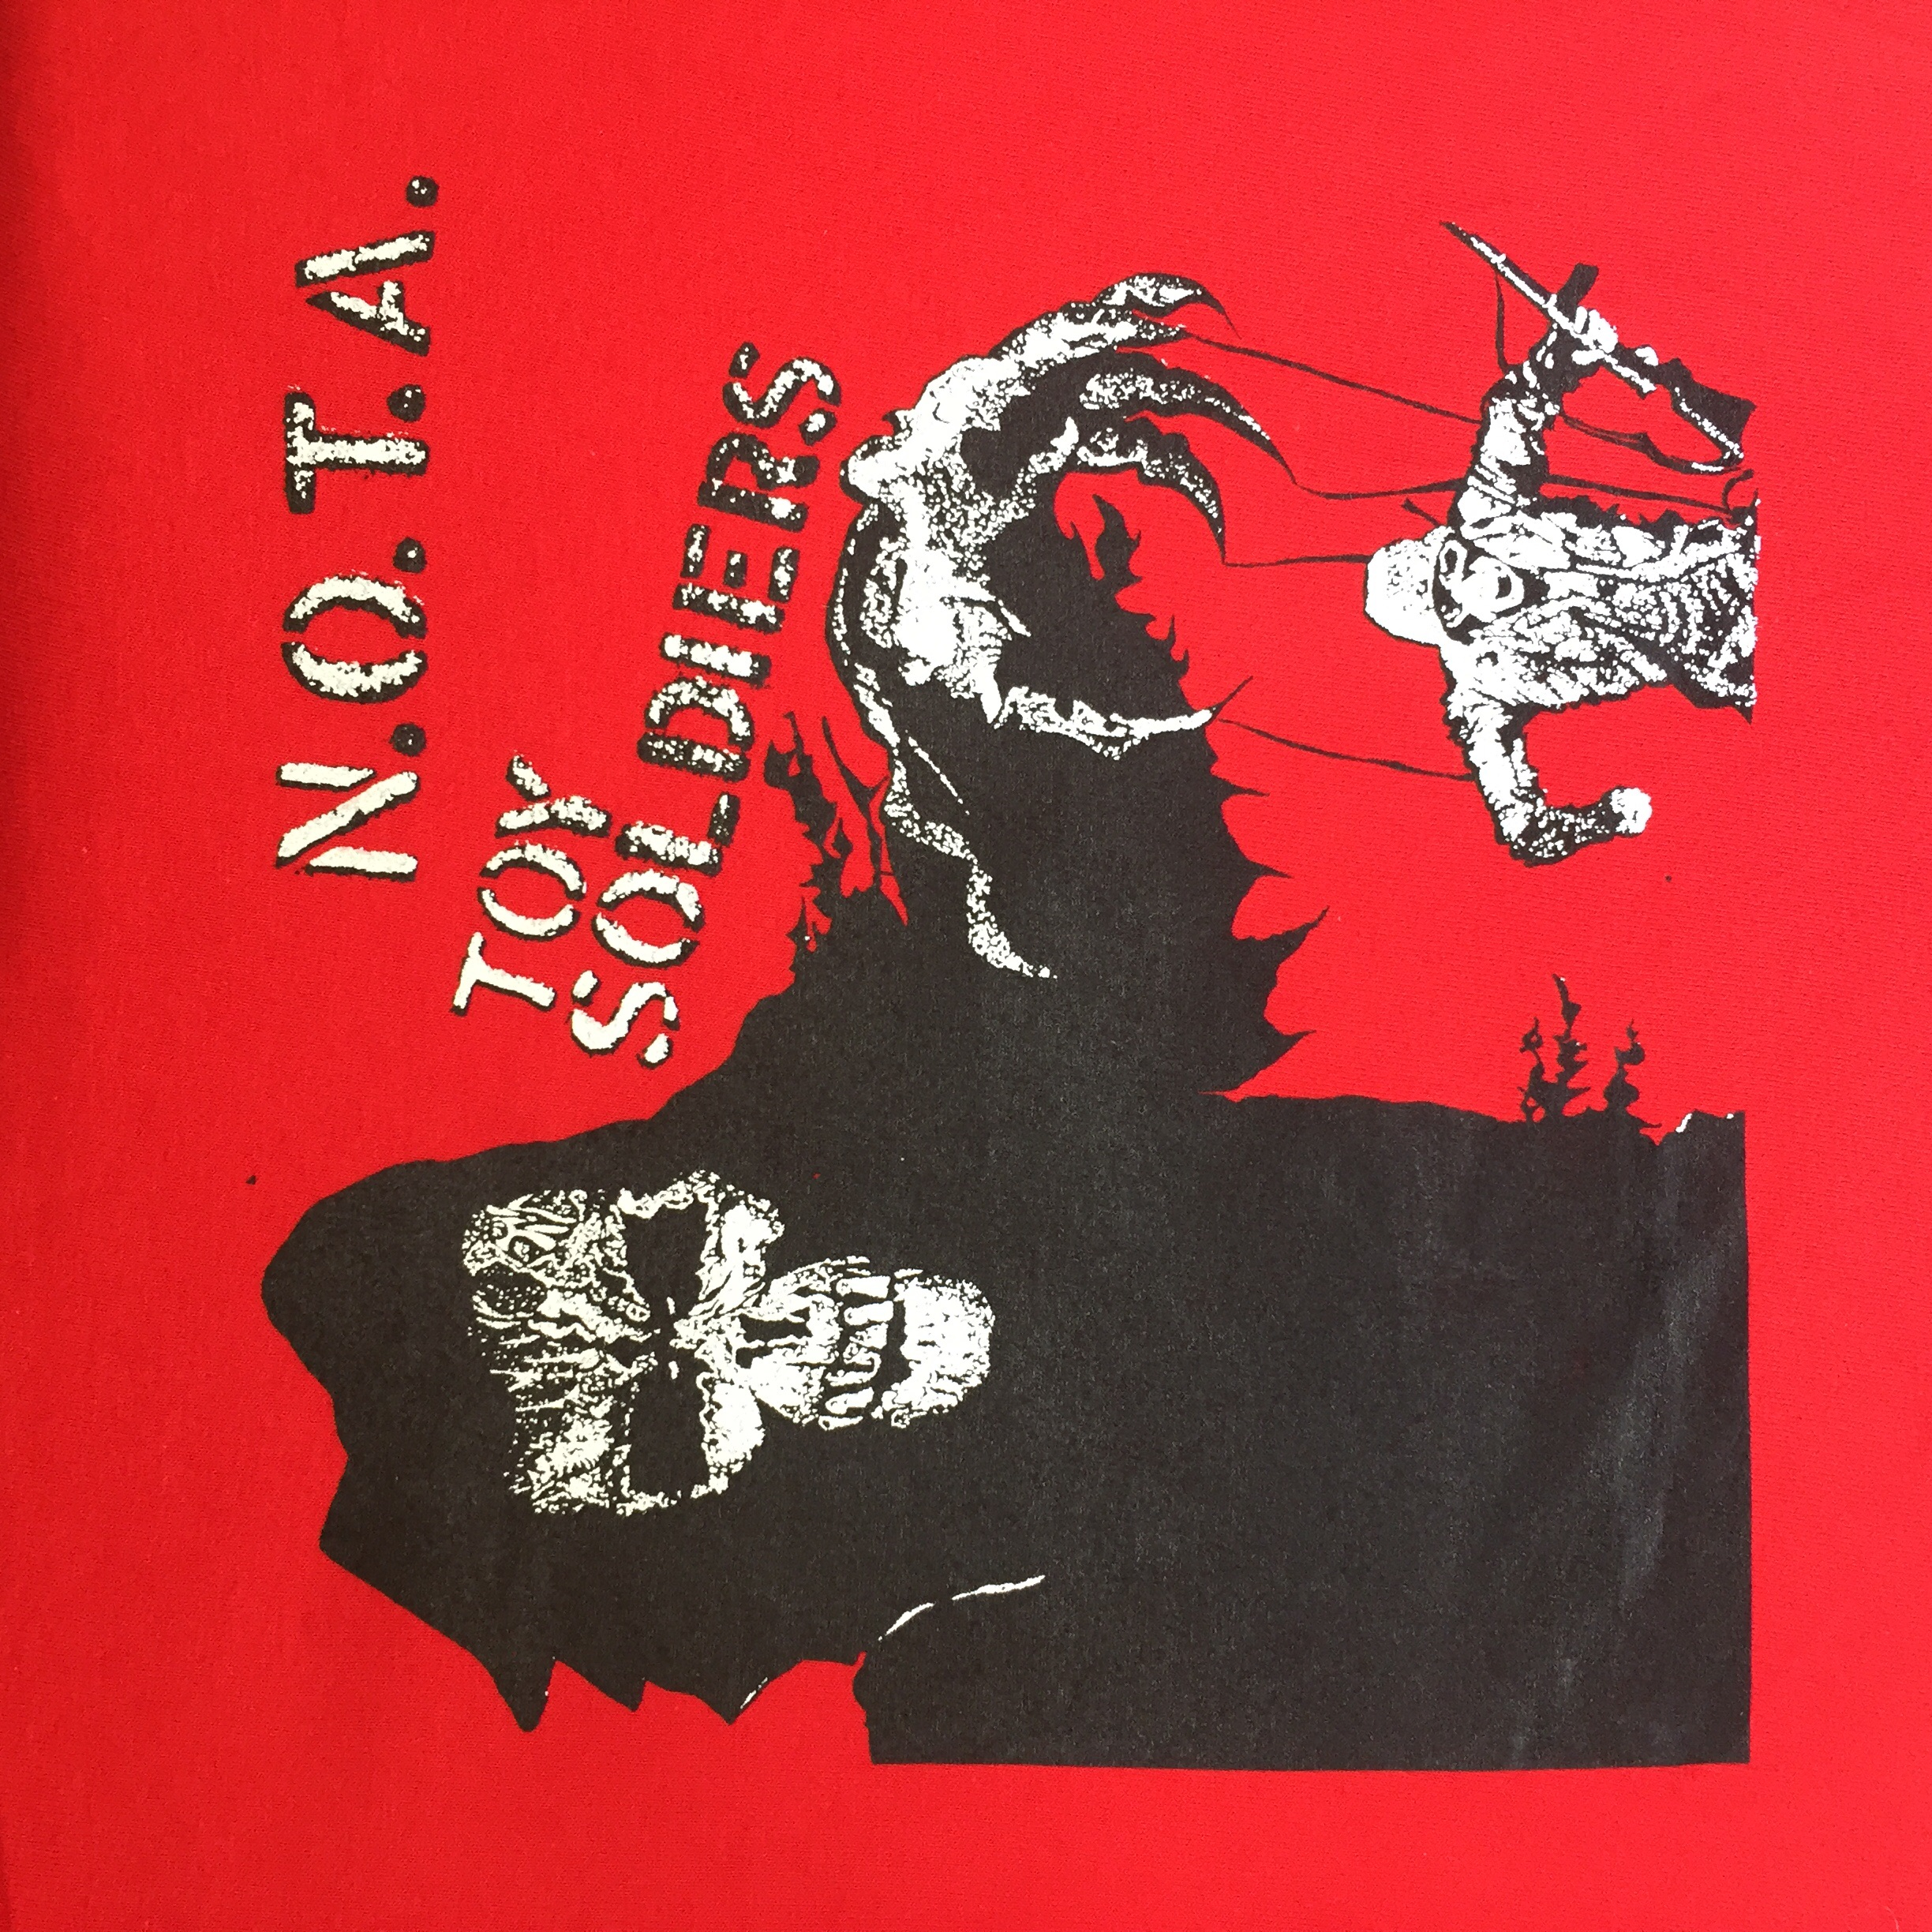 N.O.T.A. - Toy Soldiers - Shirt